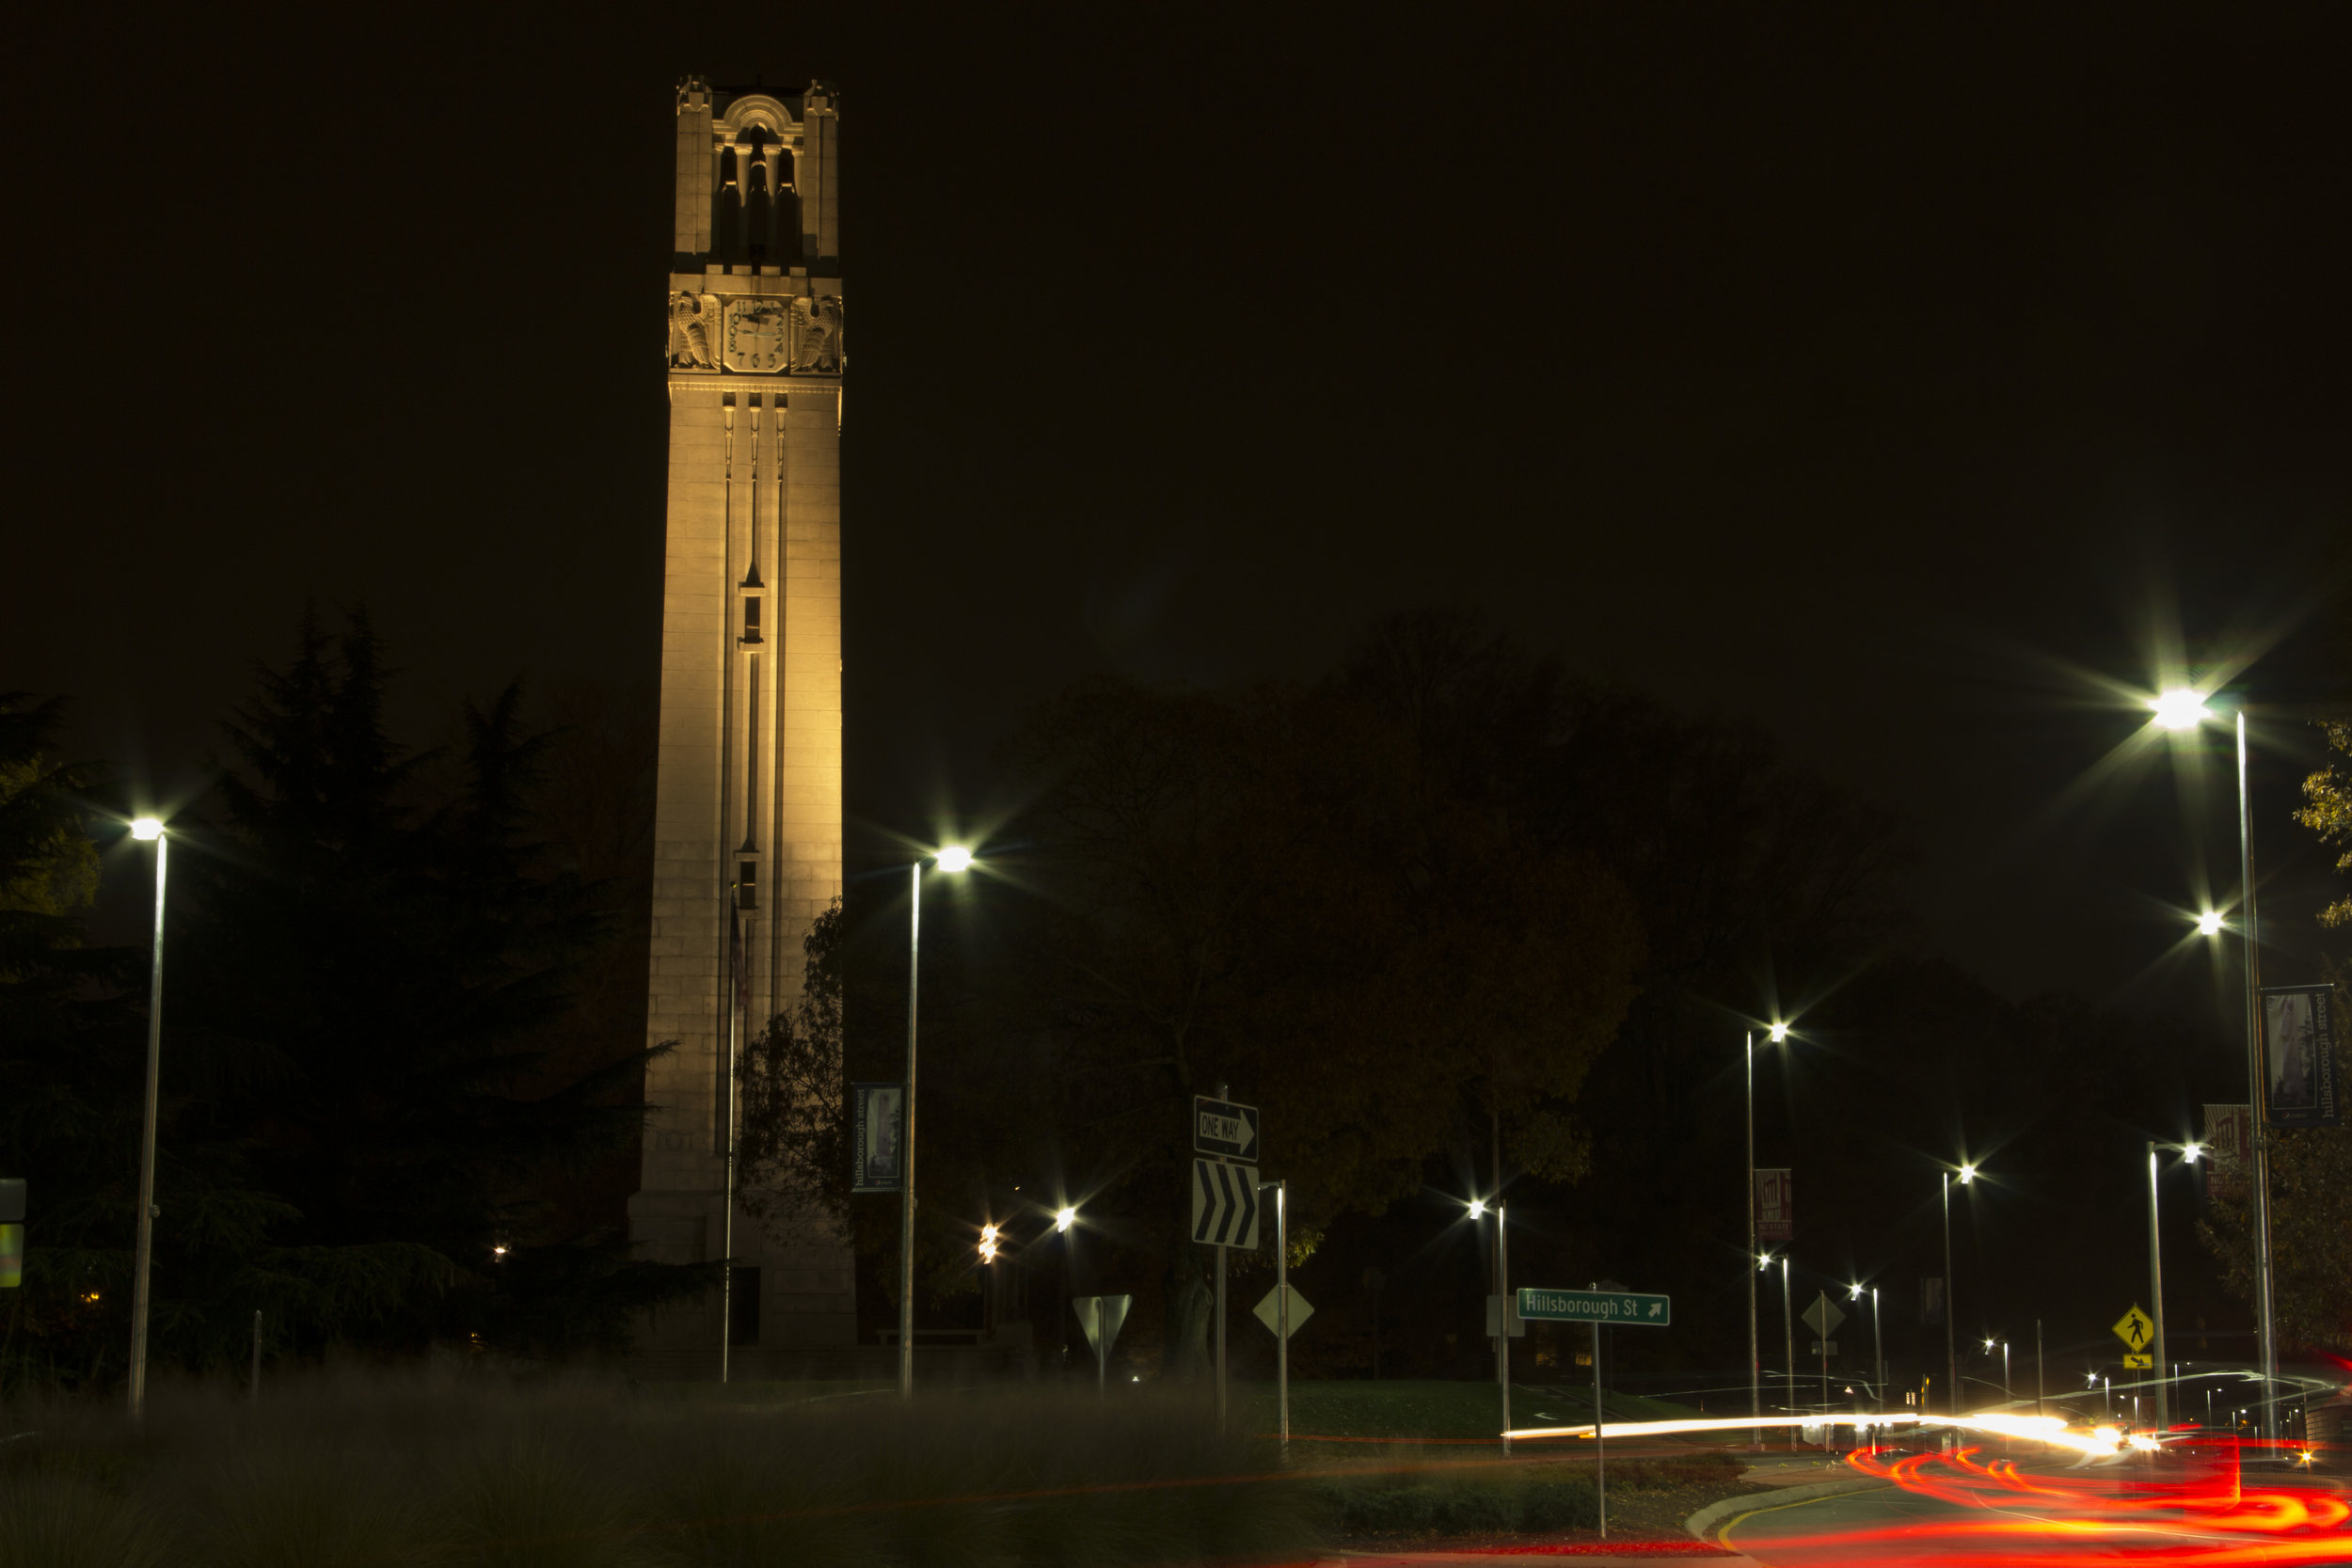 belltoweratnight.JPG